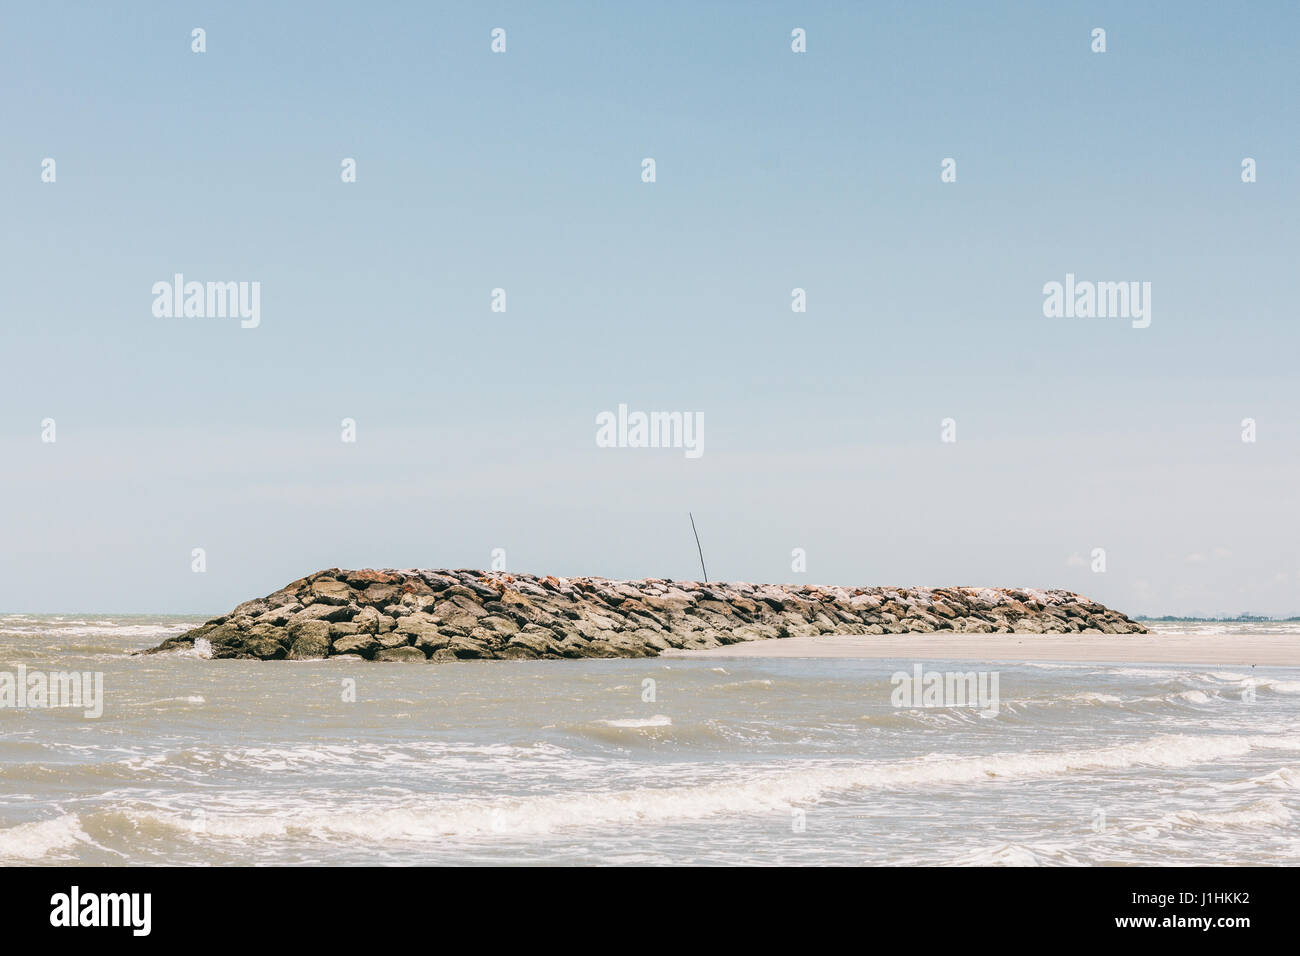 A simple view of a coastline. - Stock Image